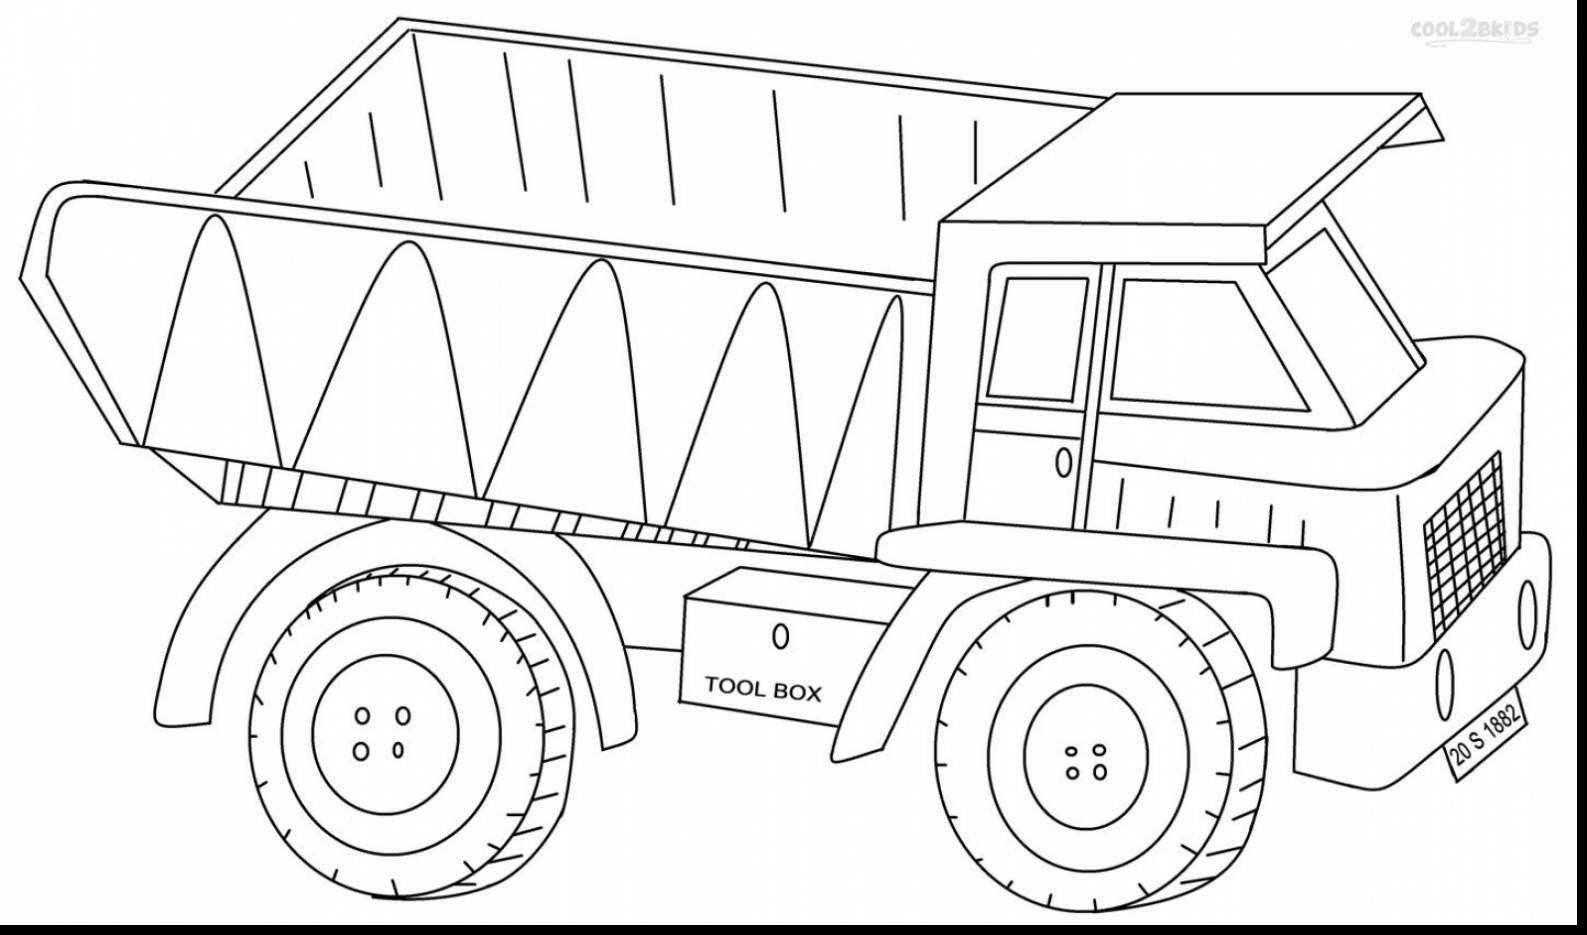 Fire Truck Coloring Page Luxury Construction Coloring Pages Luxury Garbage Truck Coloring Page Warna Gambar Mobil